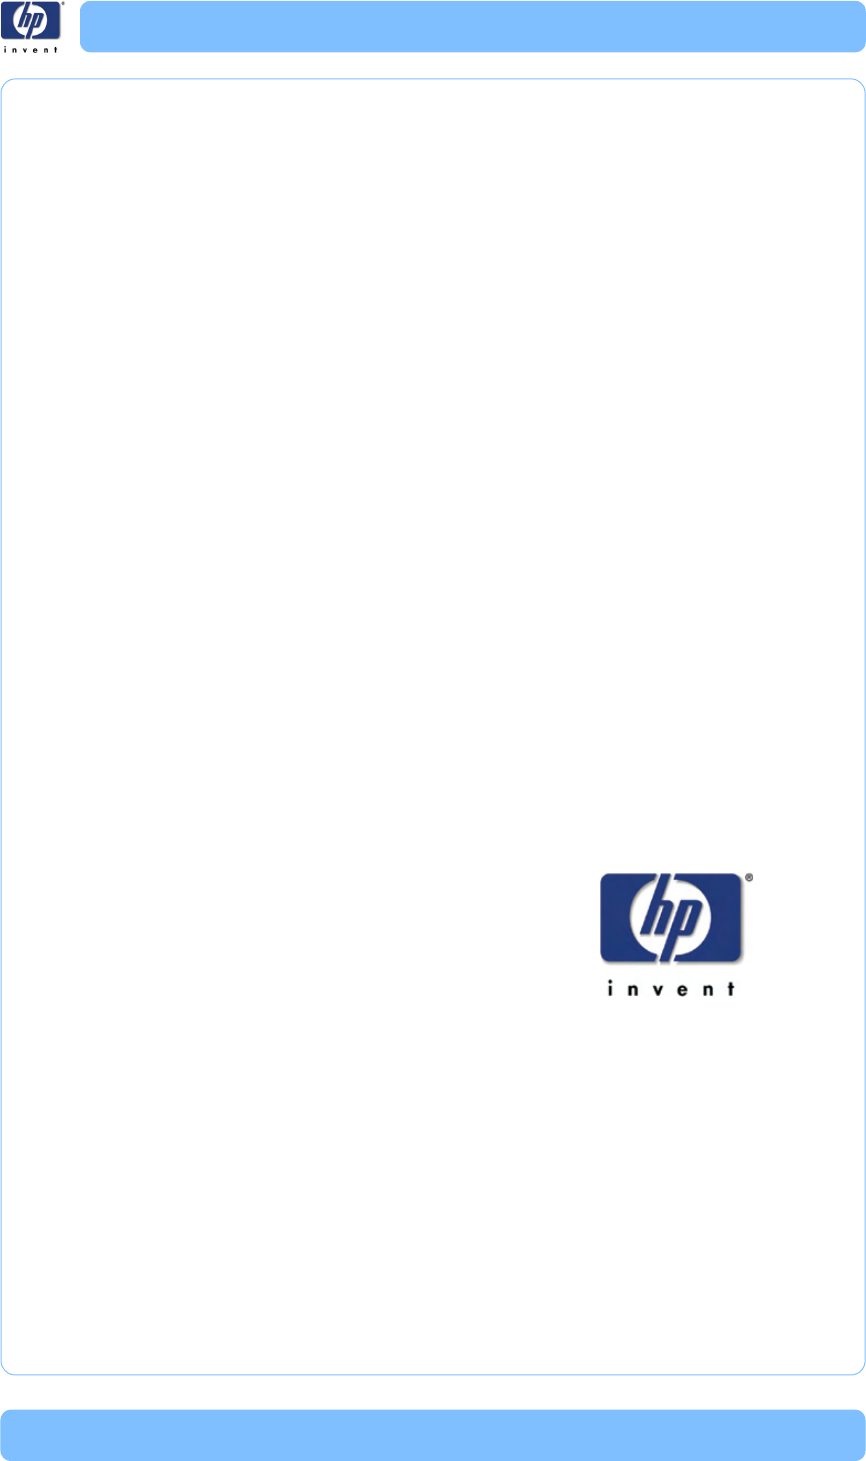 hp designjet z2100 photo printer service manual rh dectrader com HP Designjet Z3100 HP Designjet Z3100